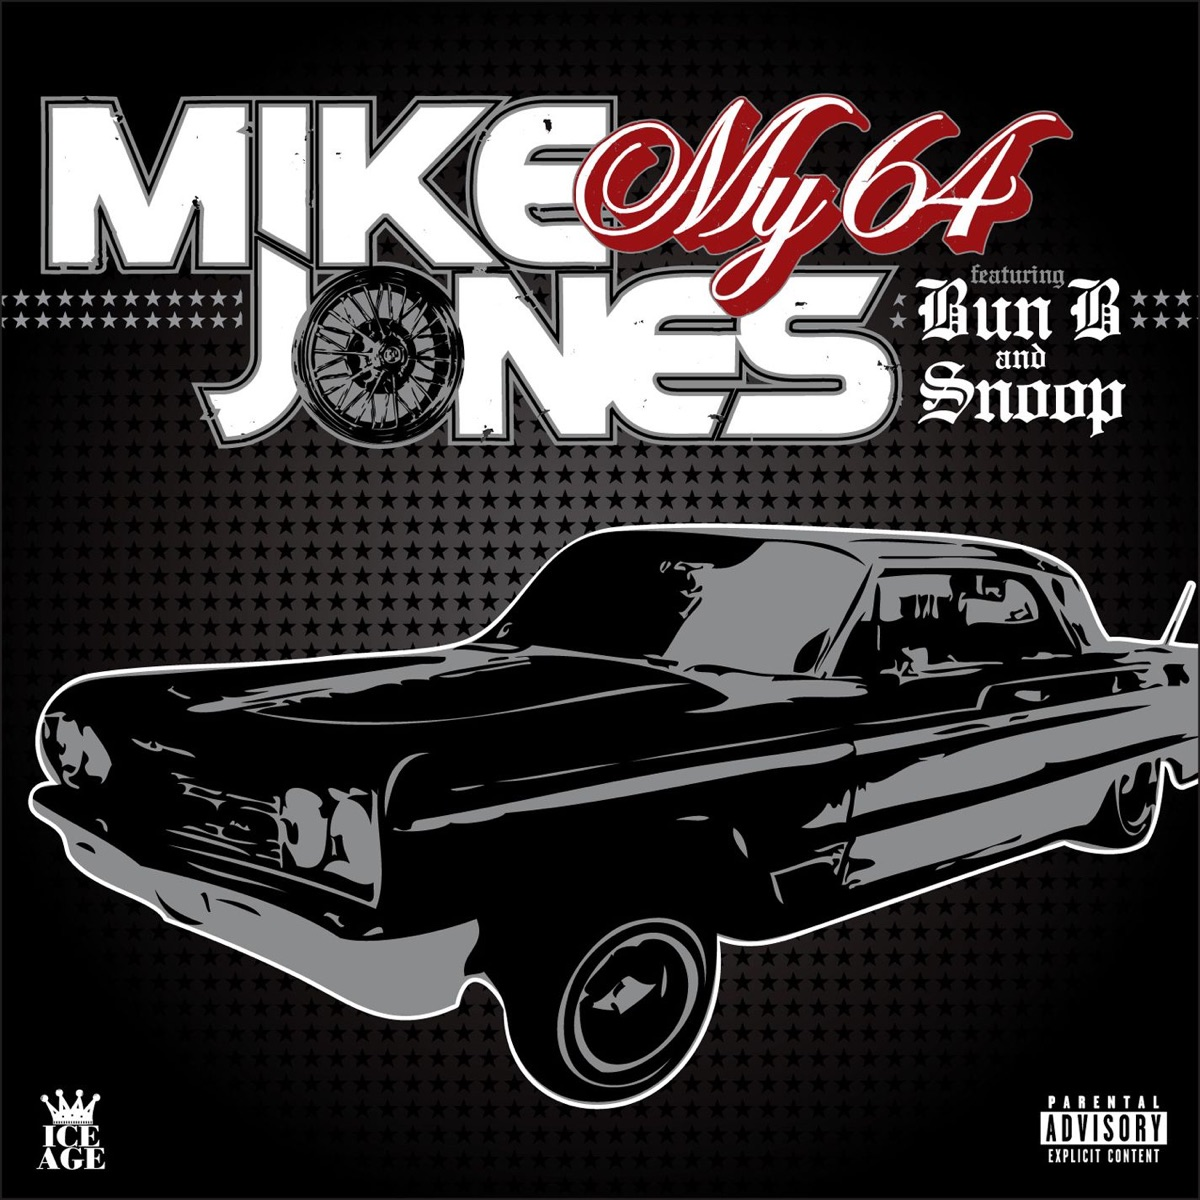 My 64 Ep Album Cover By Mike Jones Featuring Bun B Snoop